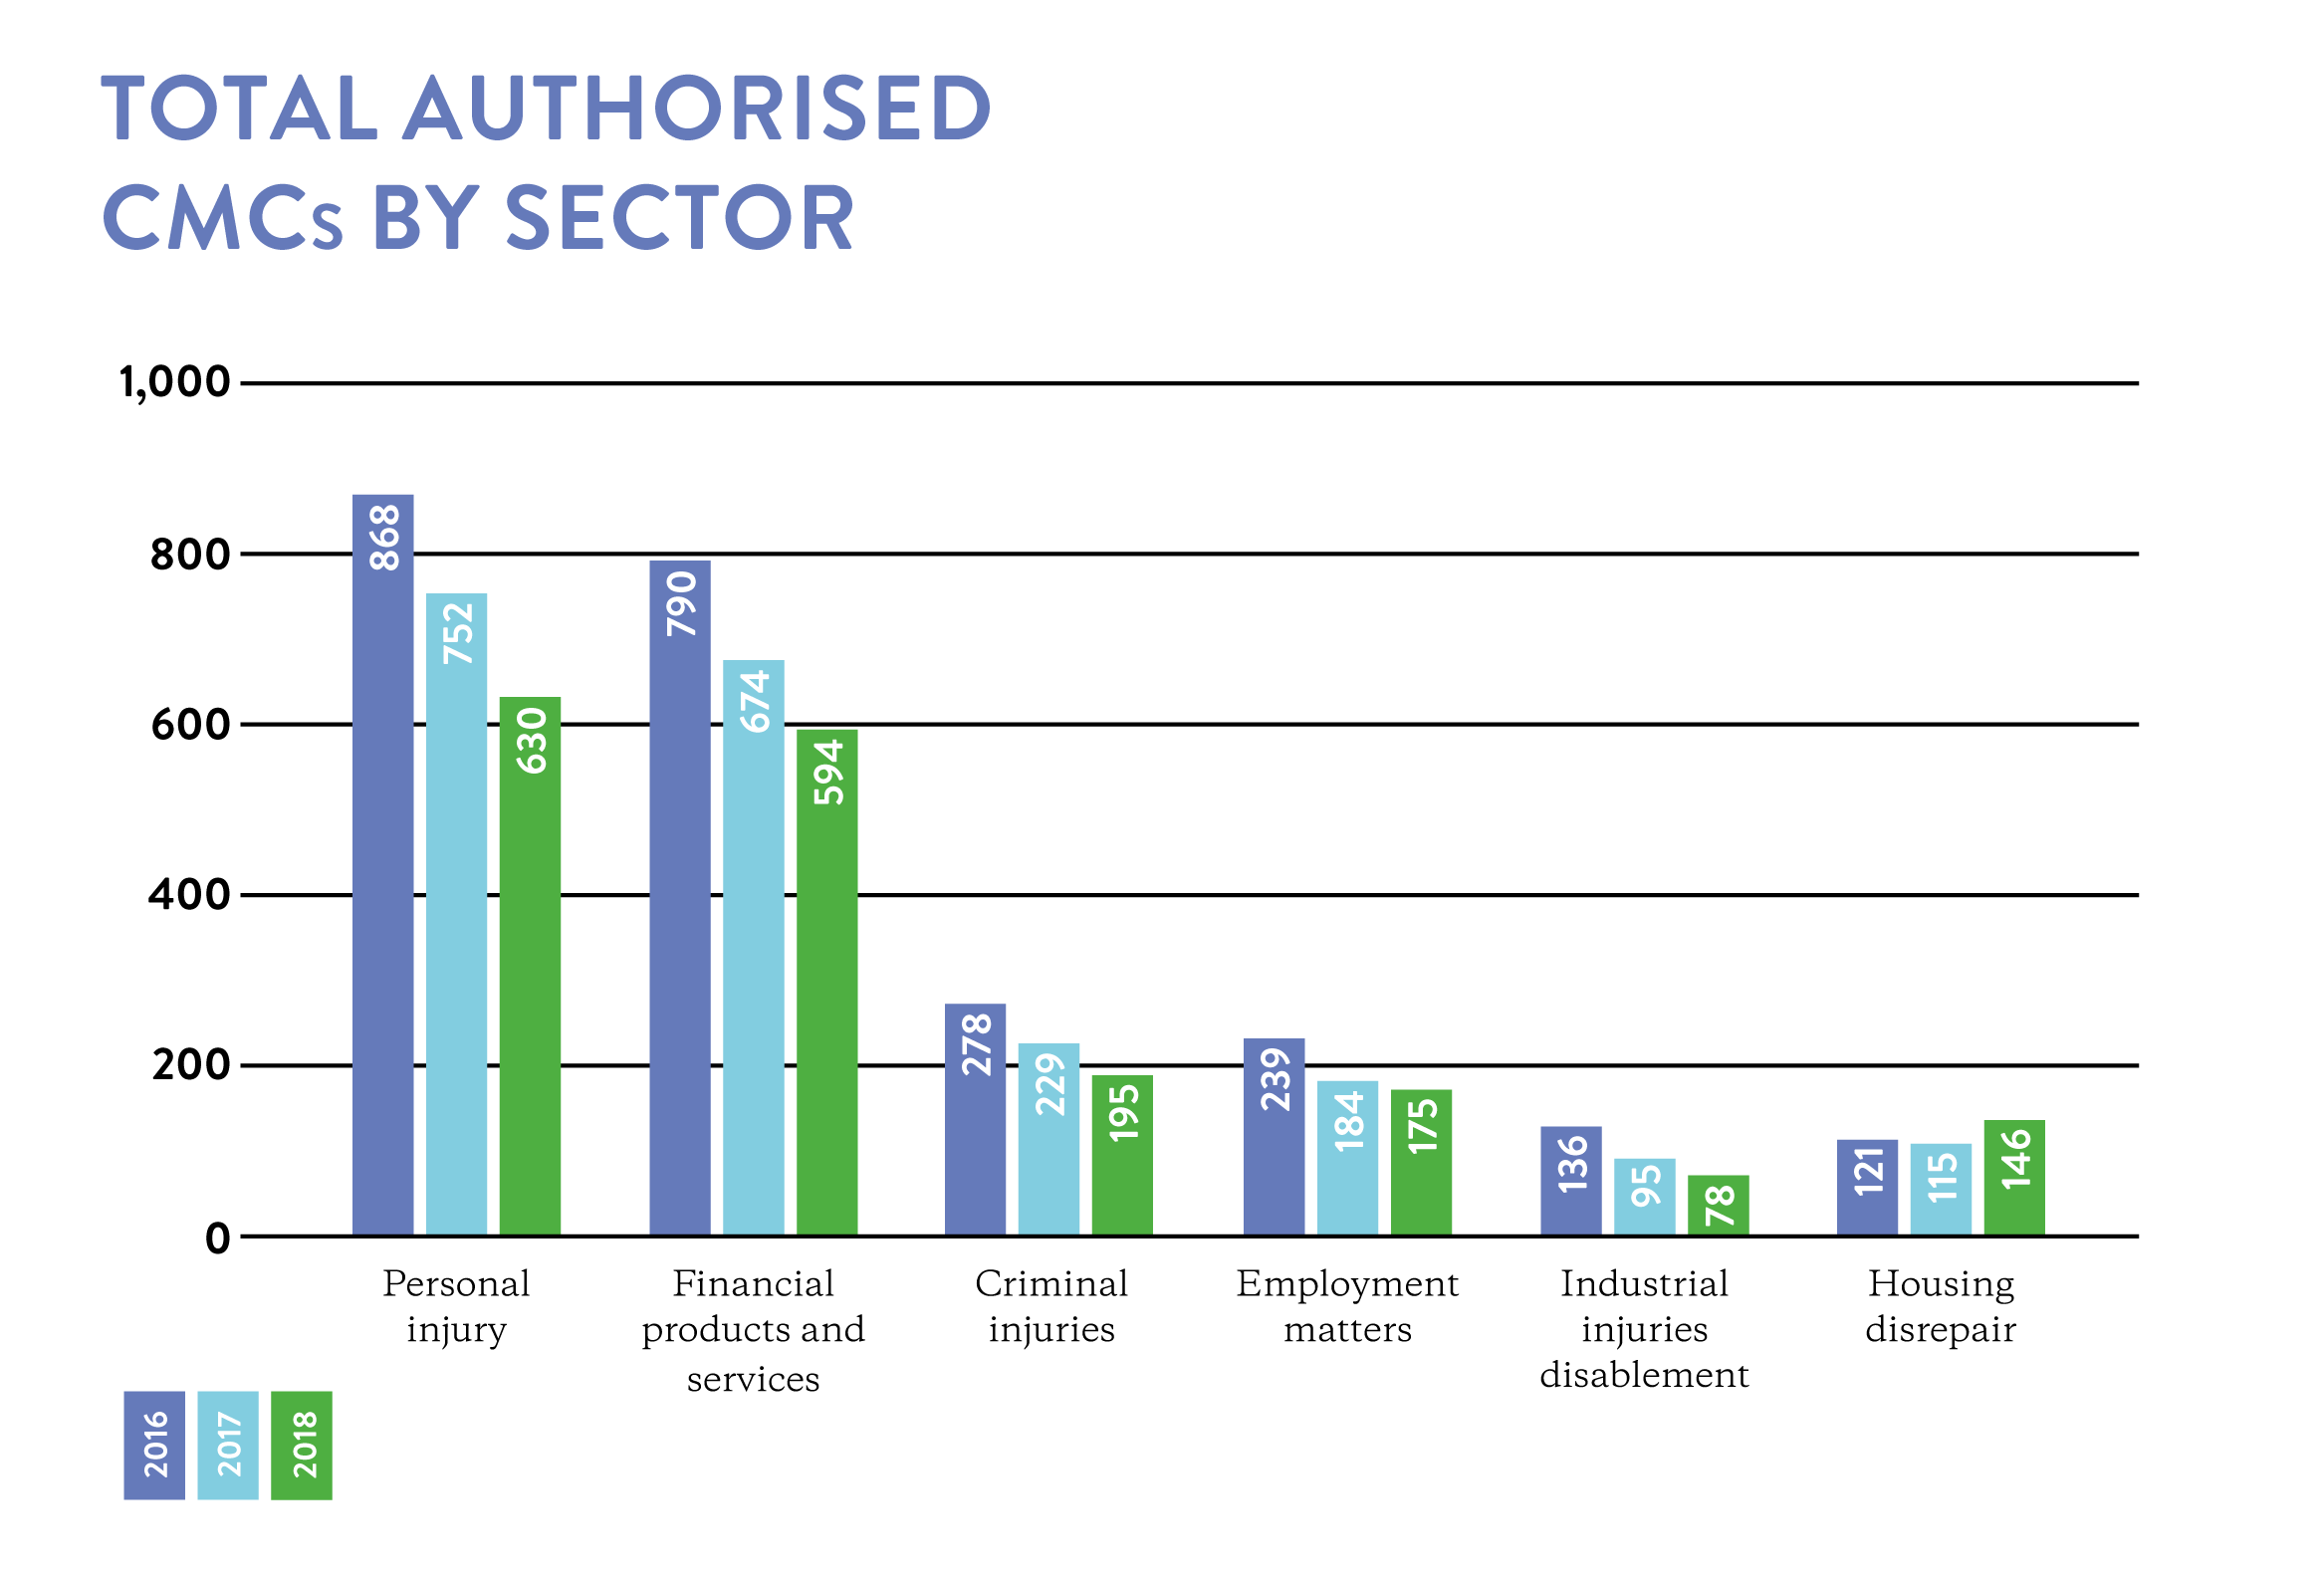 Total authorised CMCs by sector